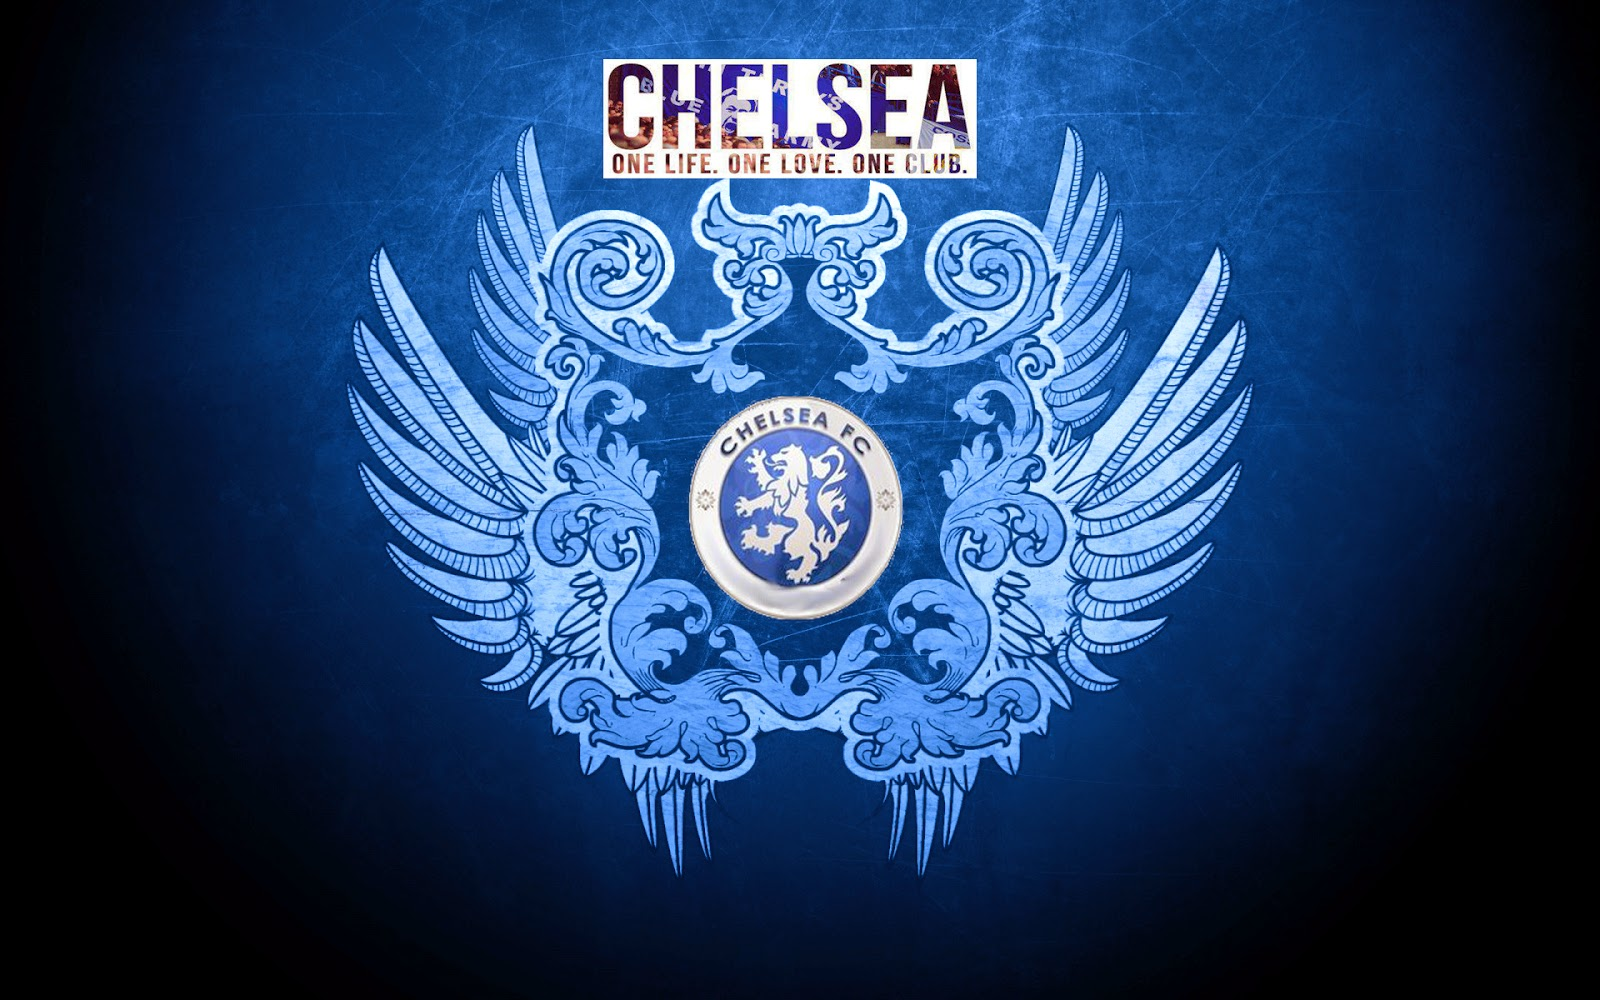 Idn Footballclub Wallpaper Chelsea Football Club Wallpaper